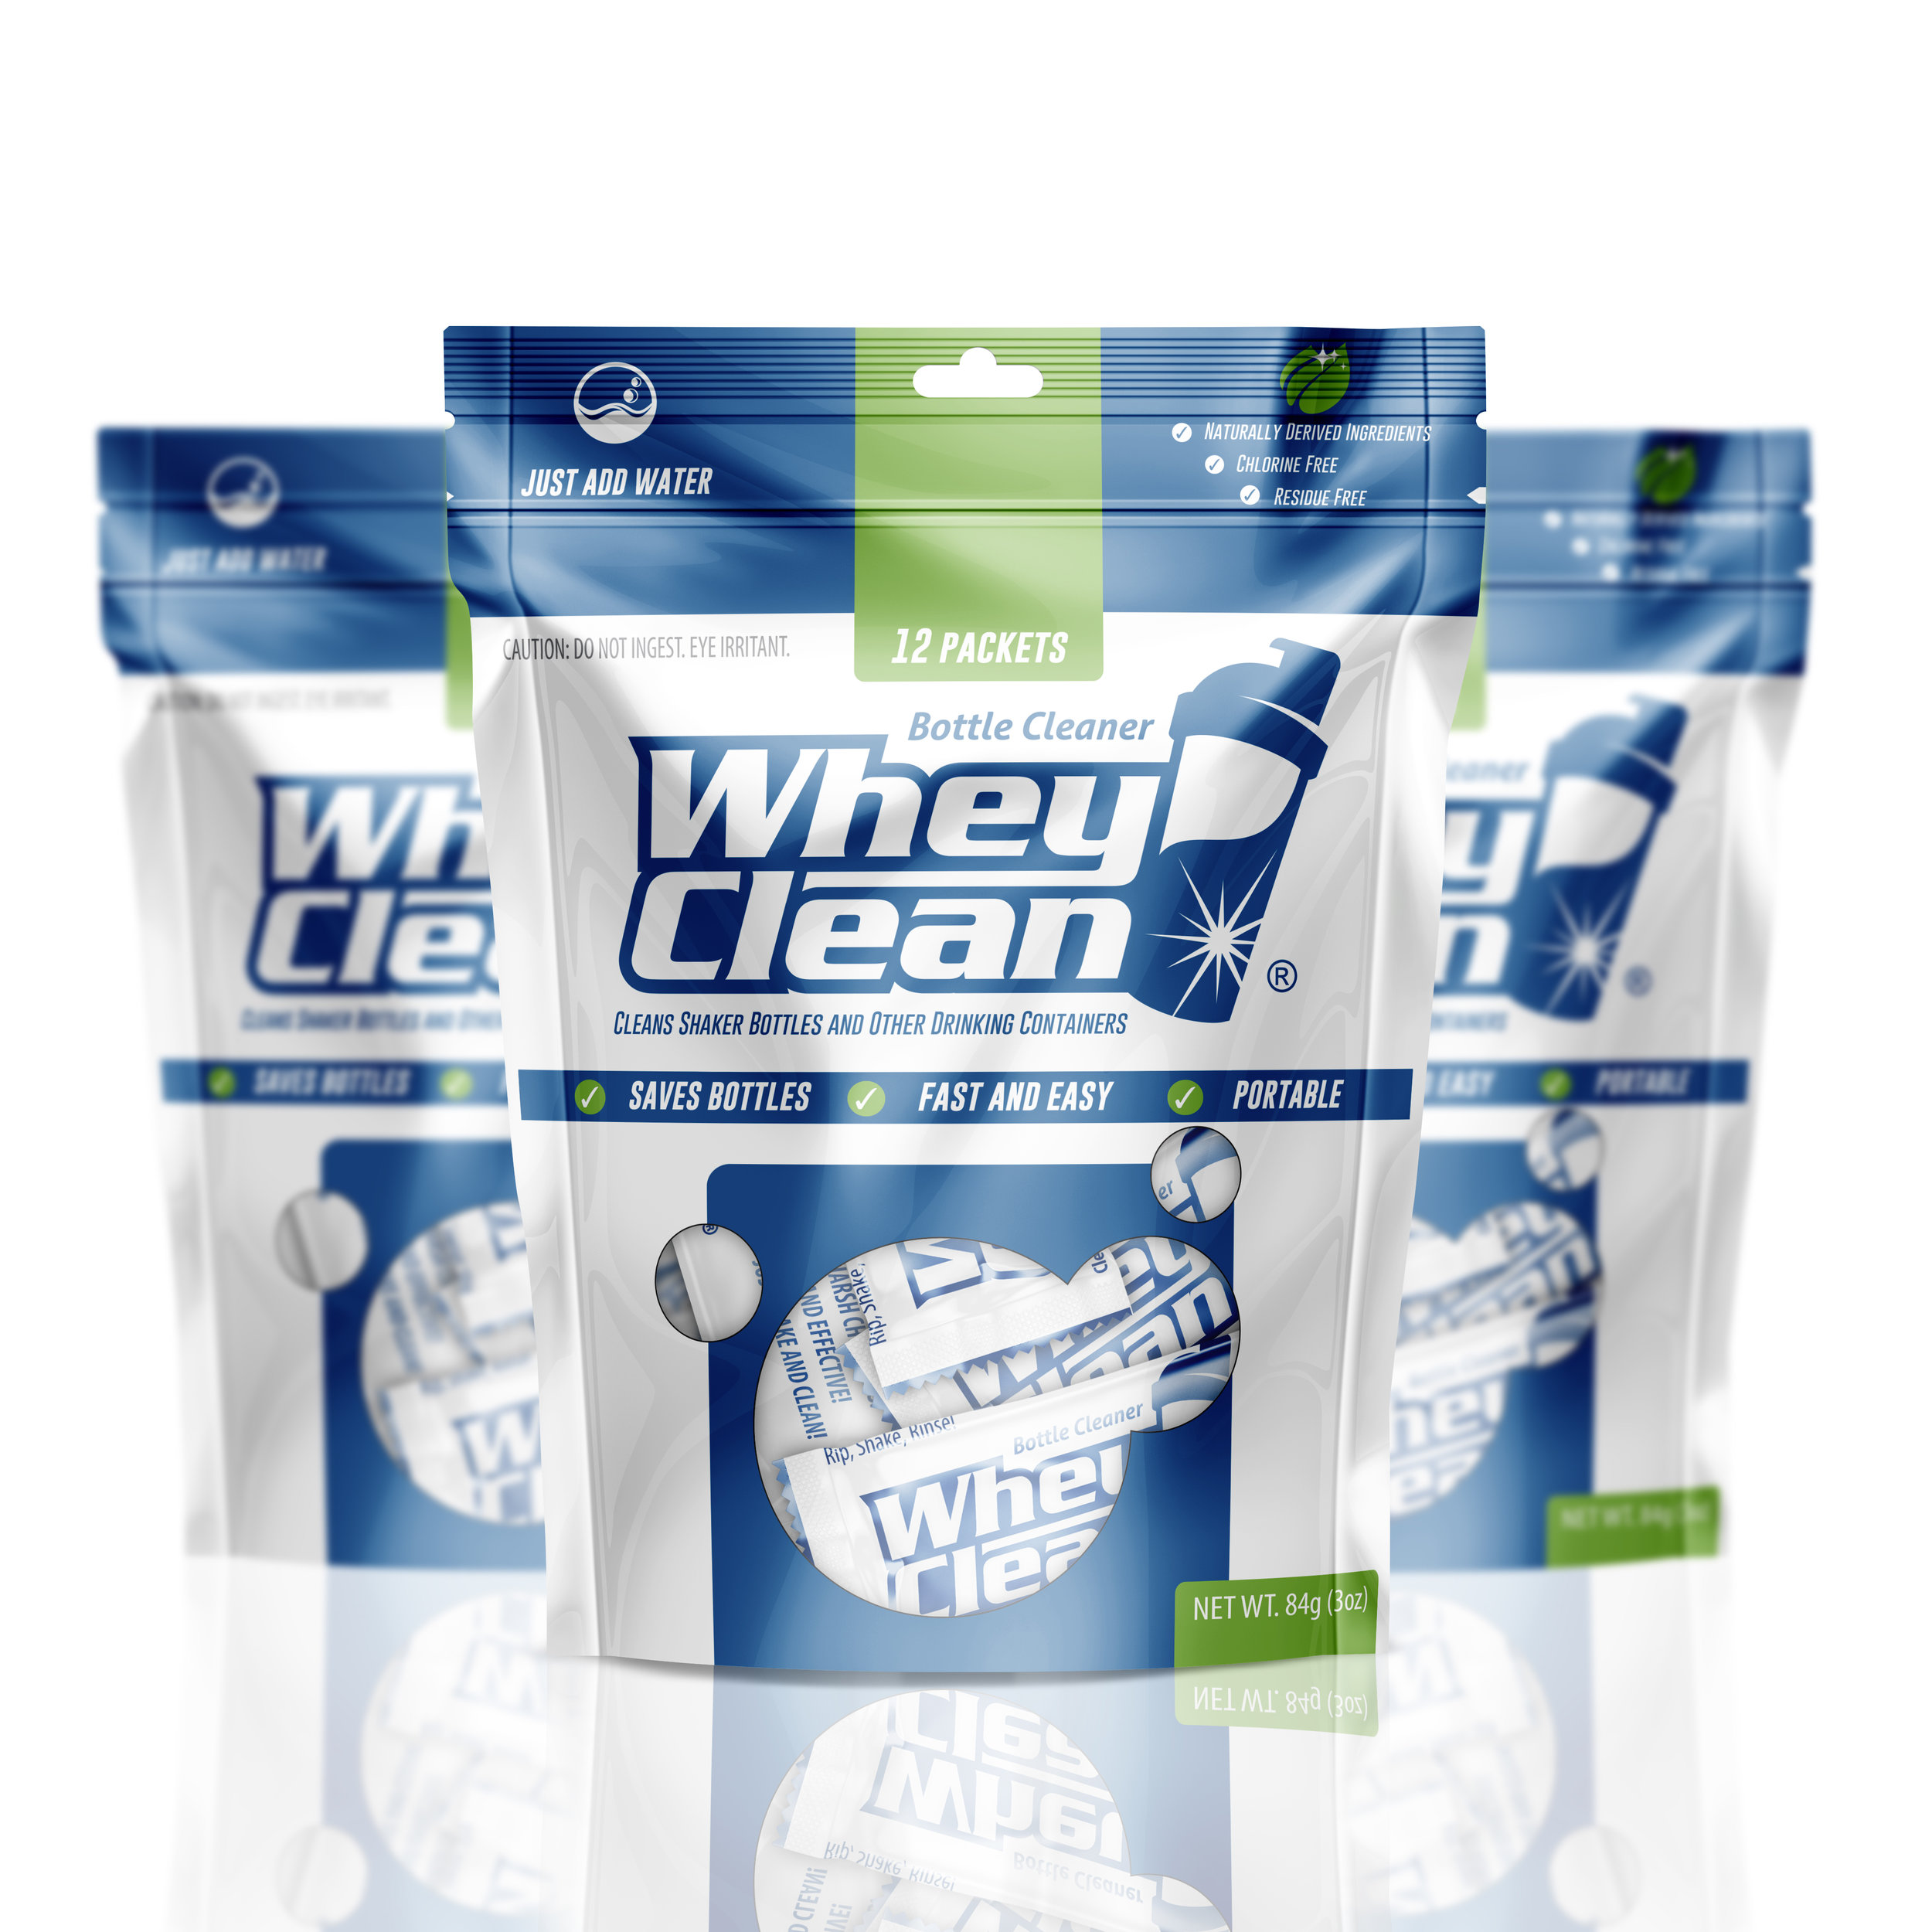 Shakers Stink. WheyClean® Cleans them. - Just rip open a packet, shake with water, and rinse! Soaks away nasty stains and odors left behind by protein, supplements, and other drinks.